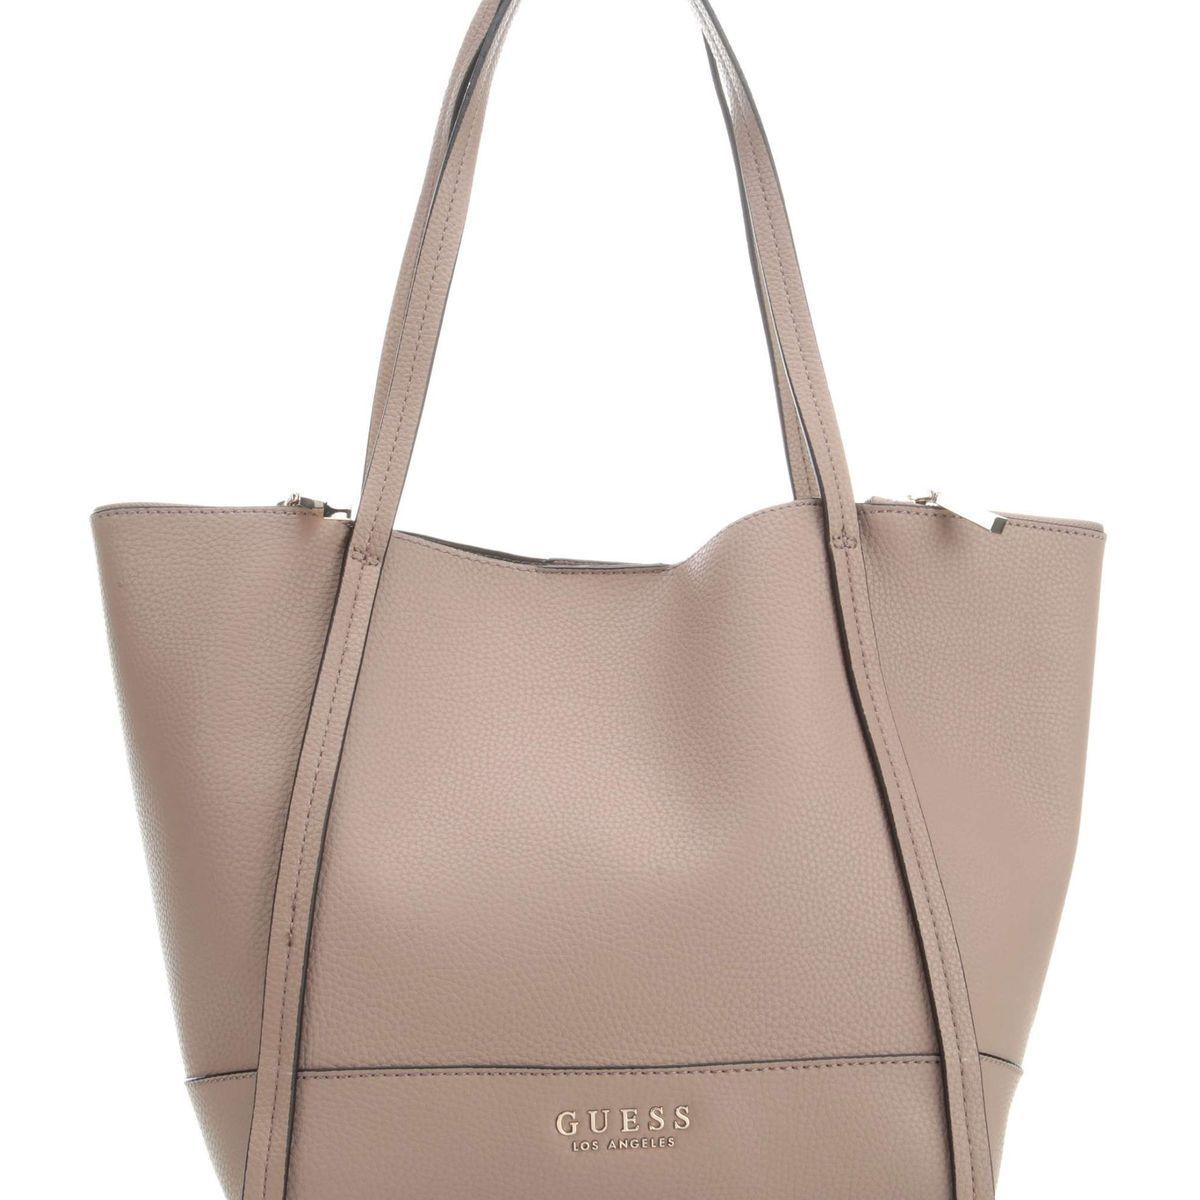 Guess femme heidi tote taupe